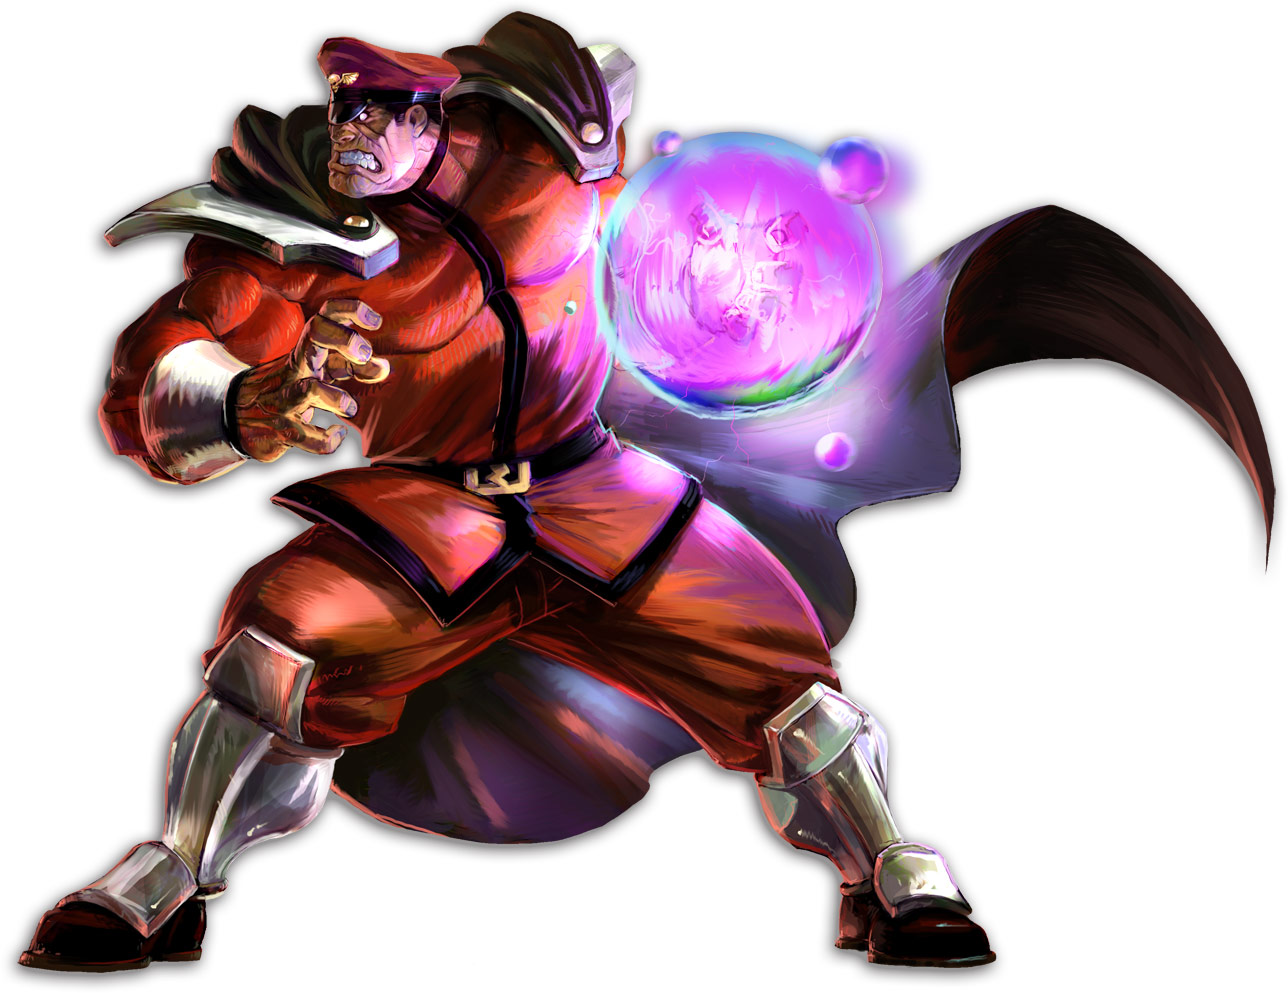 M. Bison artwork, Marvel vs. Capcom 2